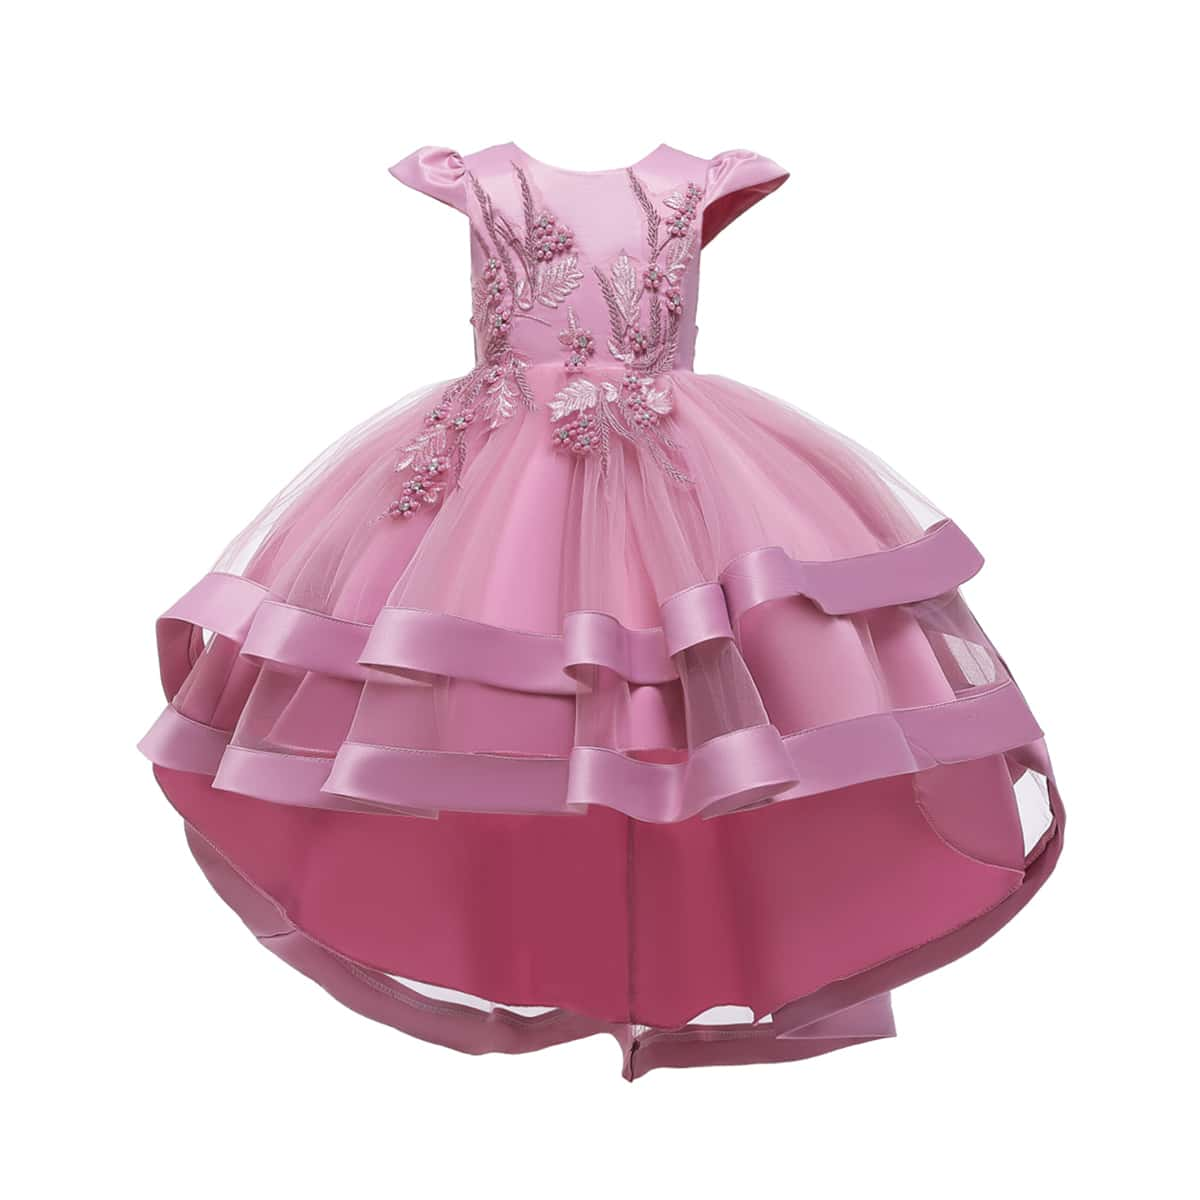 Girls Pearls Layered Mesh Gown Dress